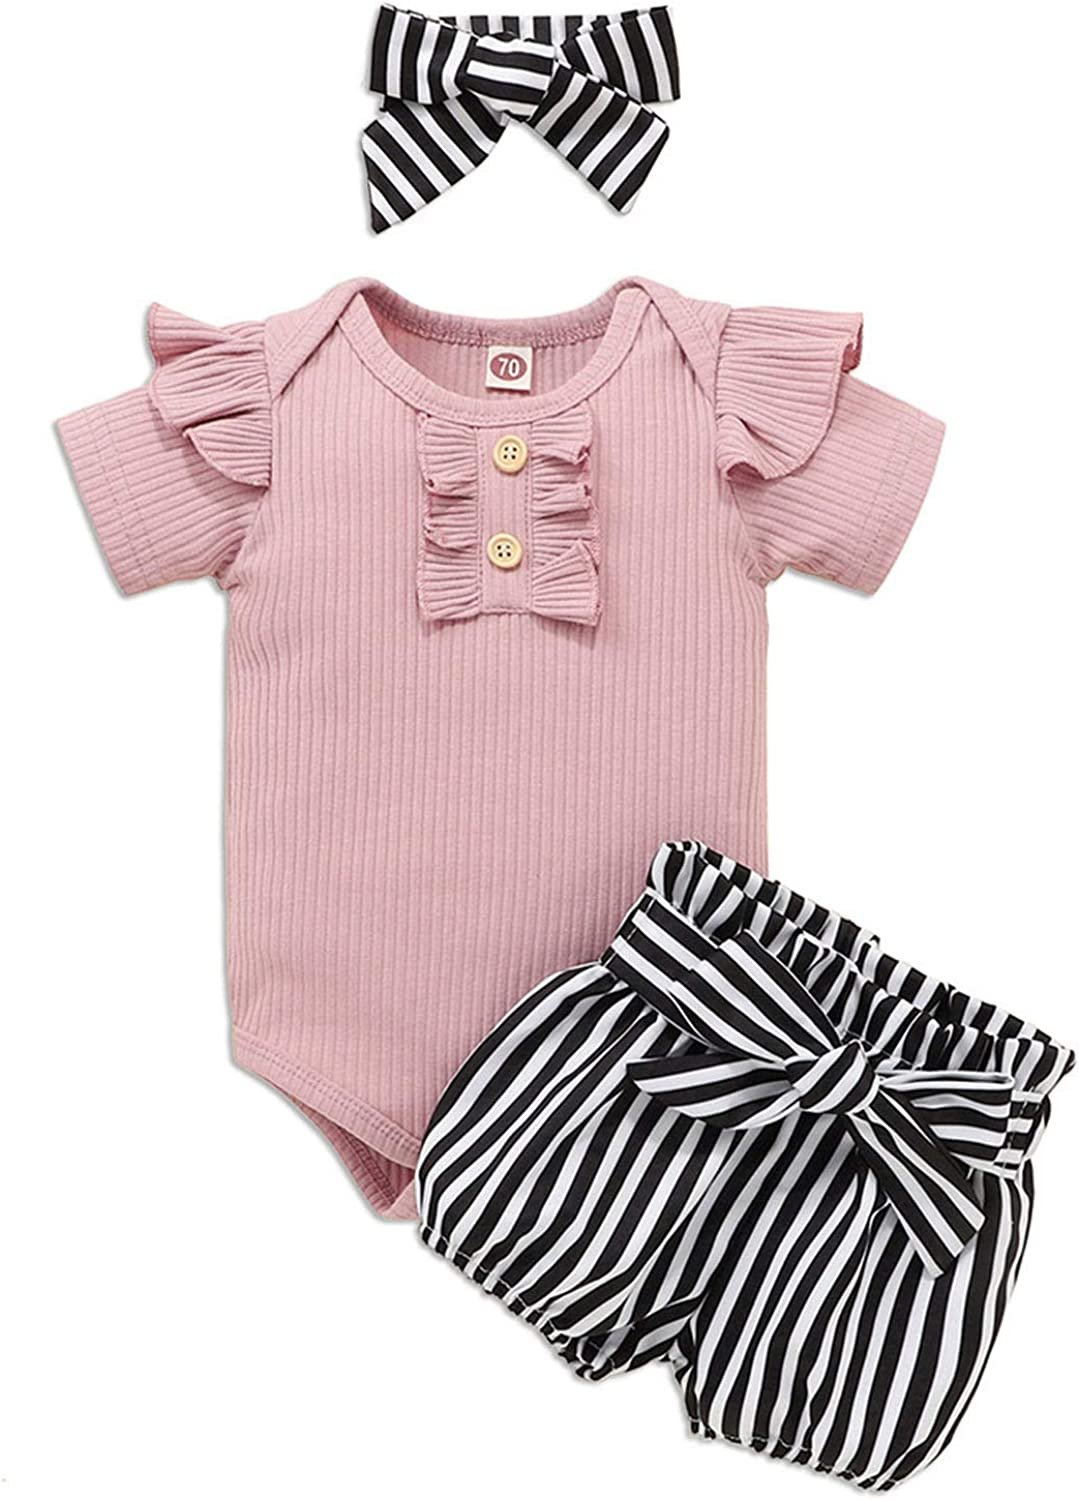 Newborn Infant Baby Girl Clothes Ruffle Letter Romper Tops Floral Shorts Cute Baby Girl Clothes Outfit Set